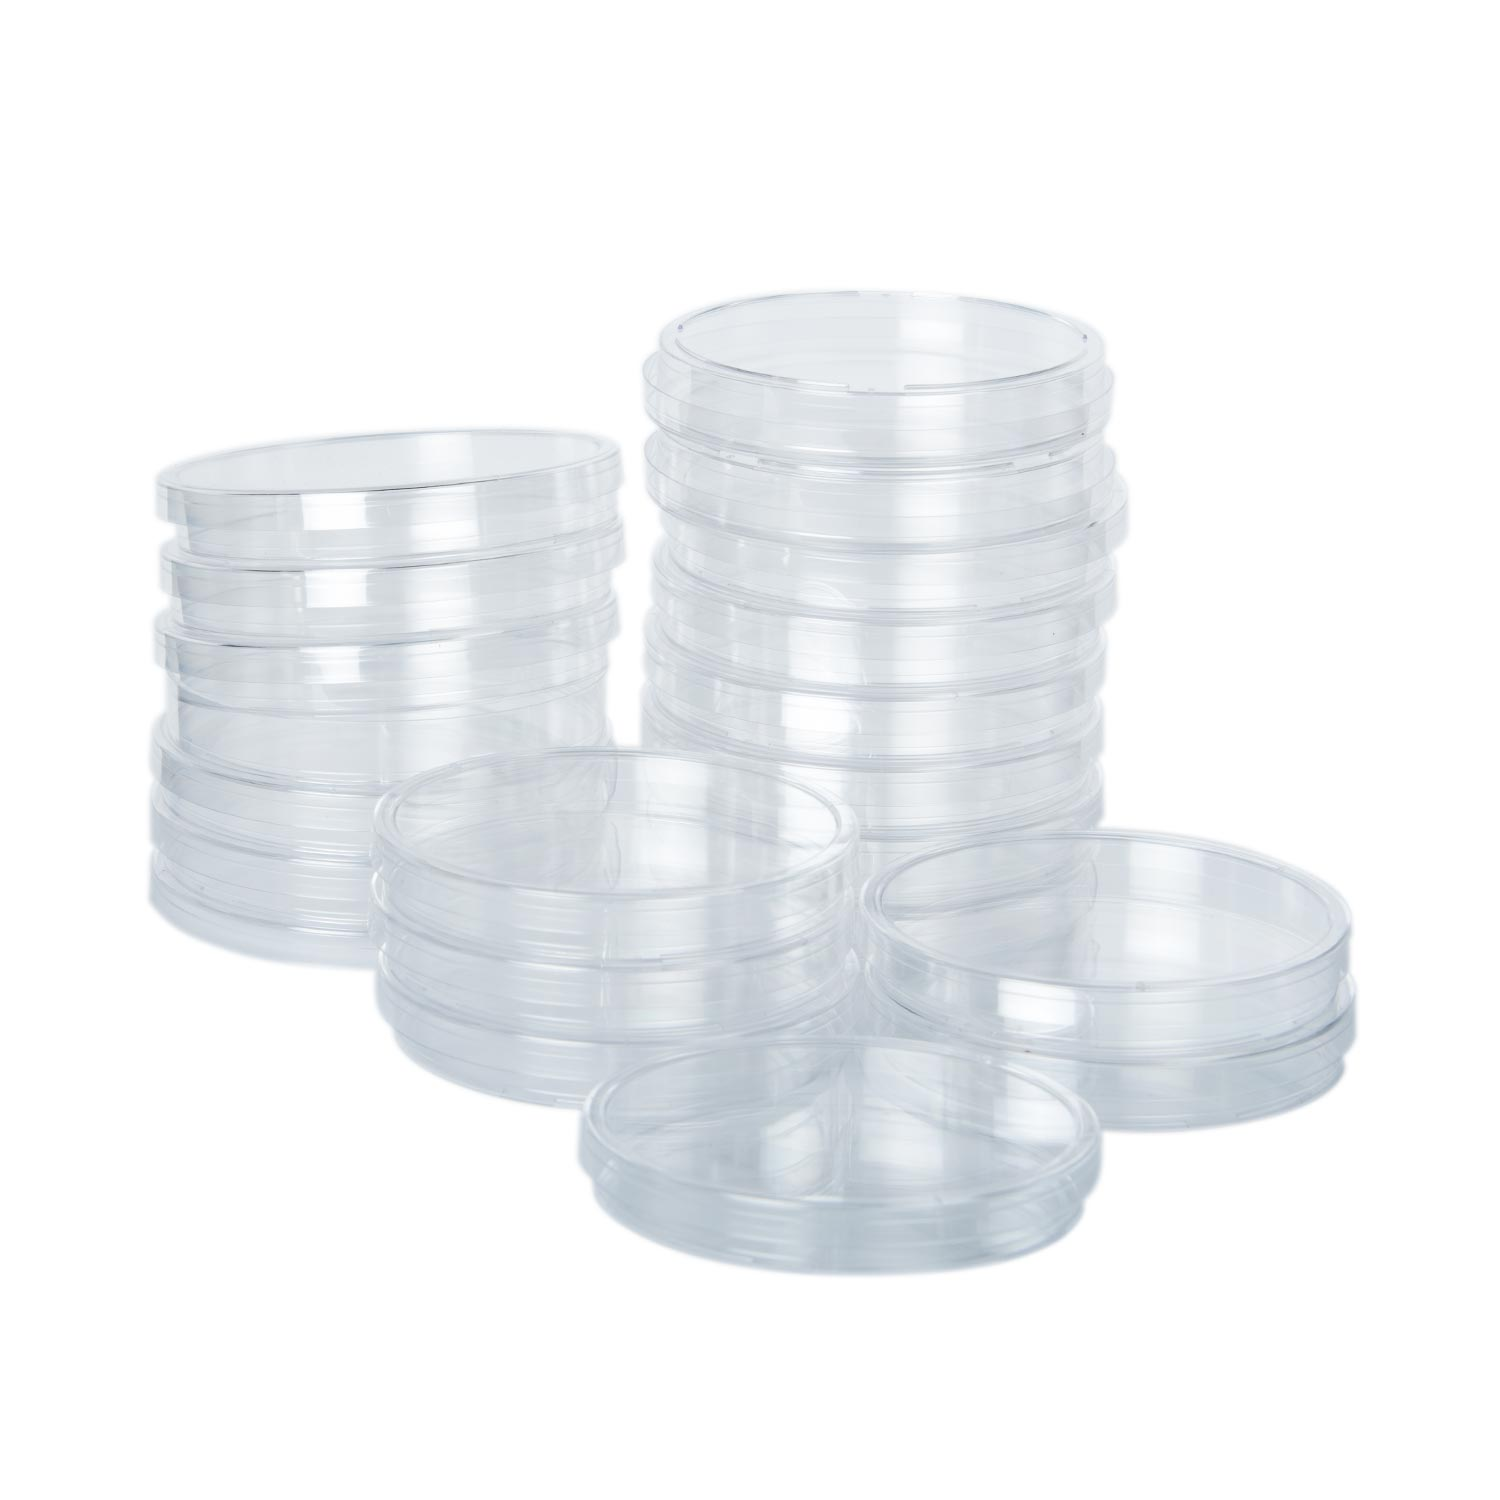 Petri Dish - 89 mm (3.5 in) - 20 pack